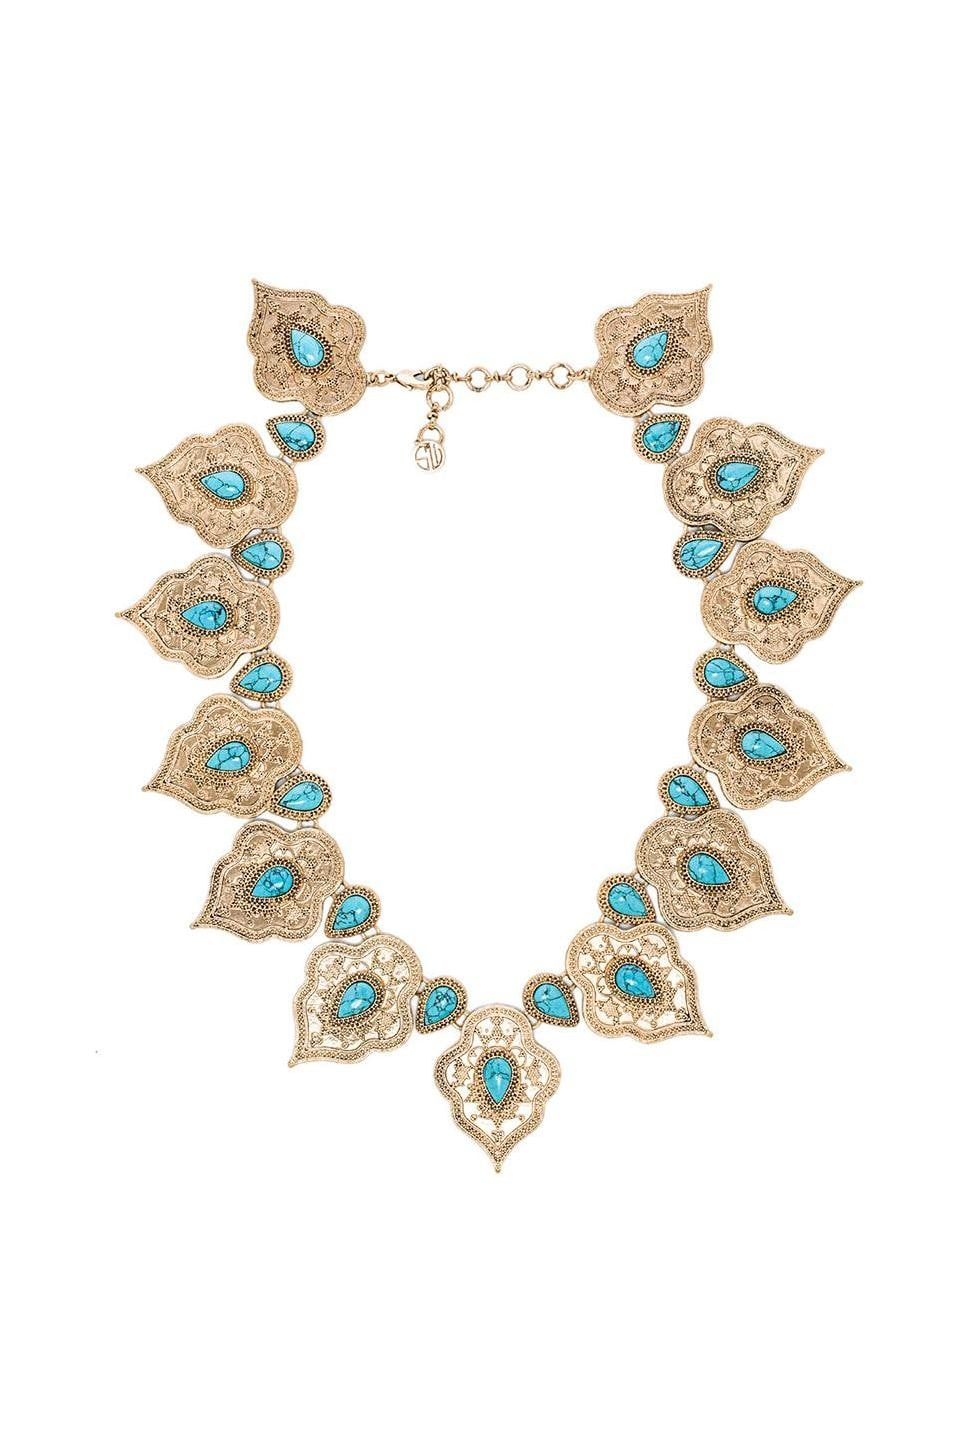 Samantha Wills Lets Get Lost Collar Necklace in Turquoise